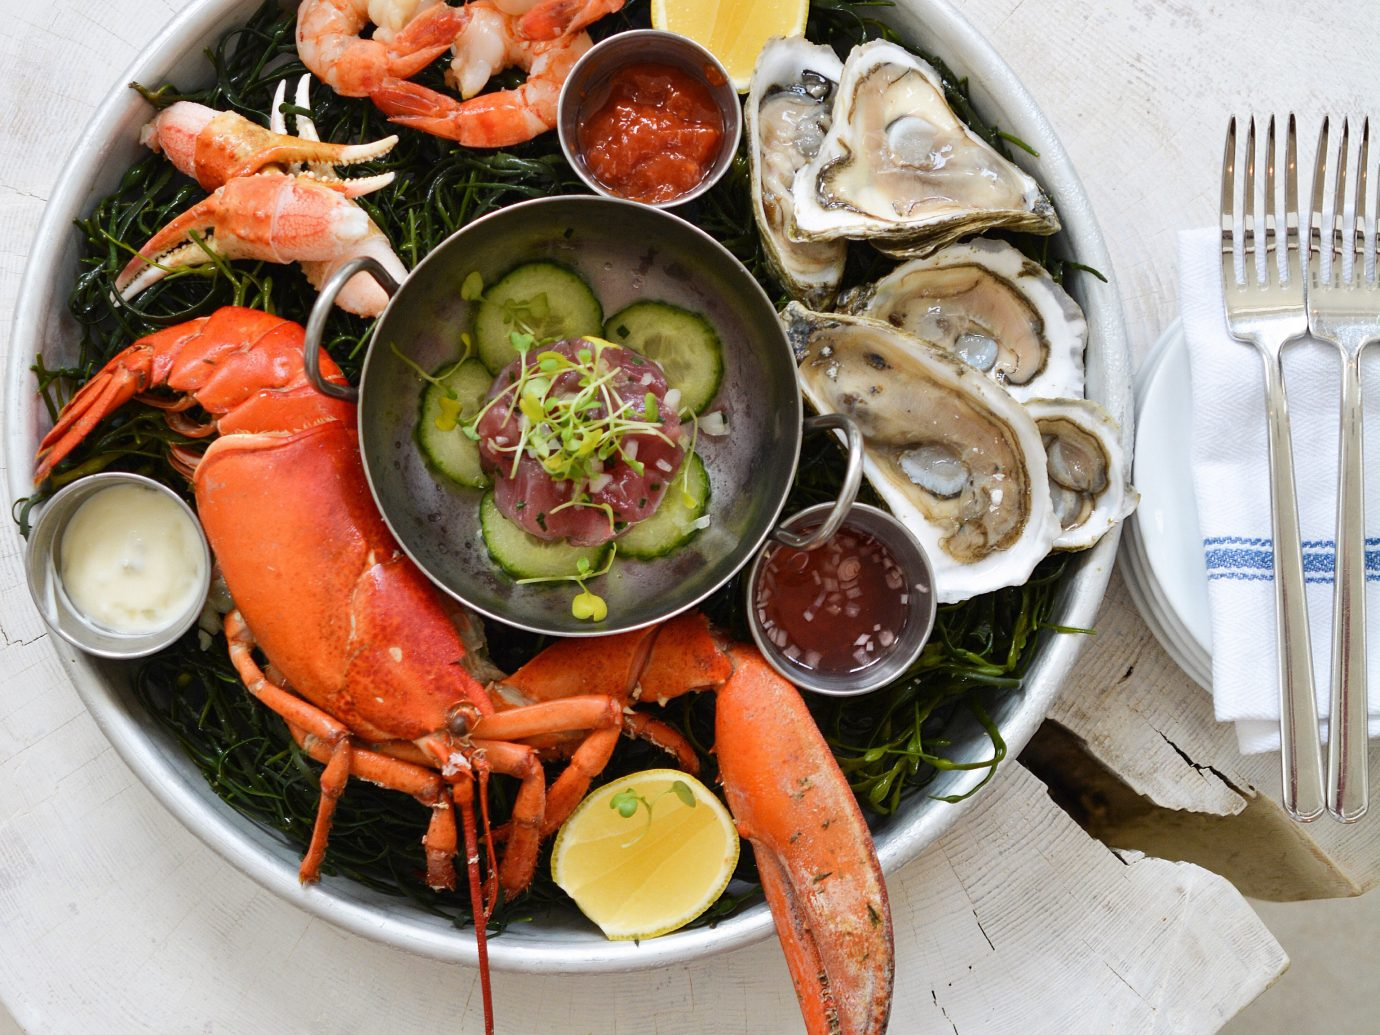 Hotels food dish plate cuisine meal Seafood fish asian food toppings